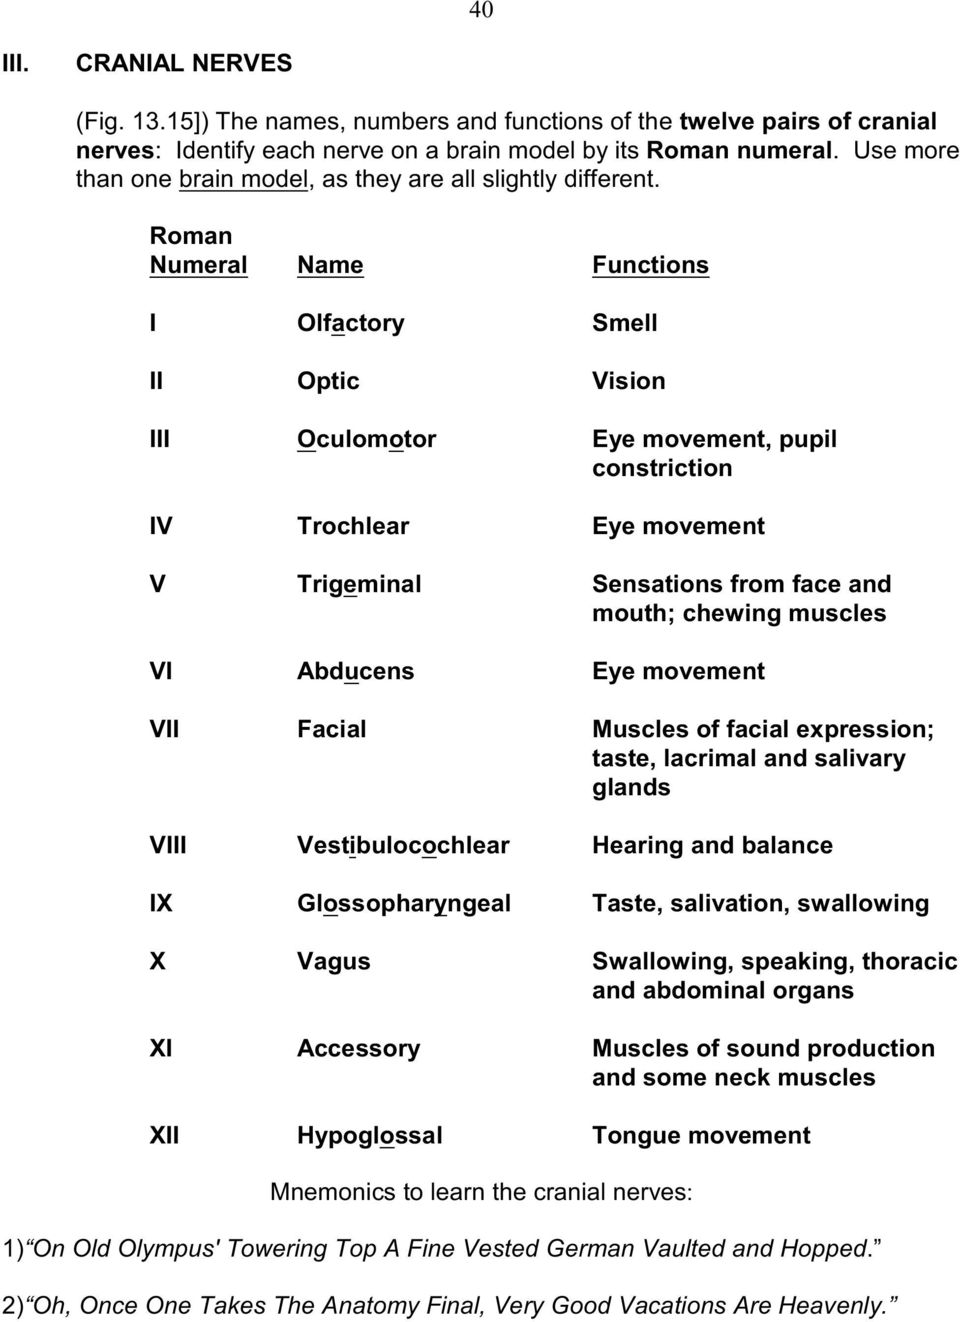 Roman Numeral Name Functions I Olfactory Smell II Optic Vision III Oculomotor Eye movement, pupil constriction IV Trochlear Eye movement V Trigeminal Sensations from face and mouth; chewing muscles